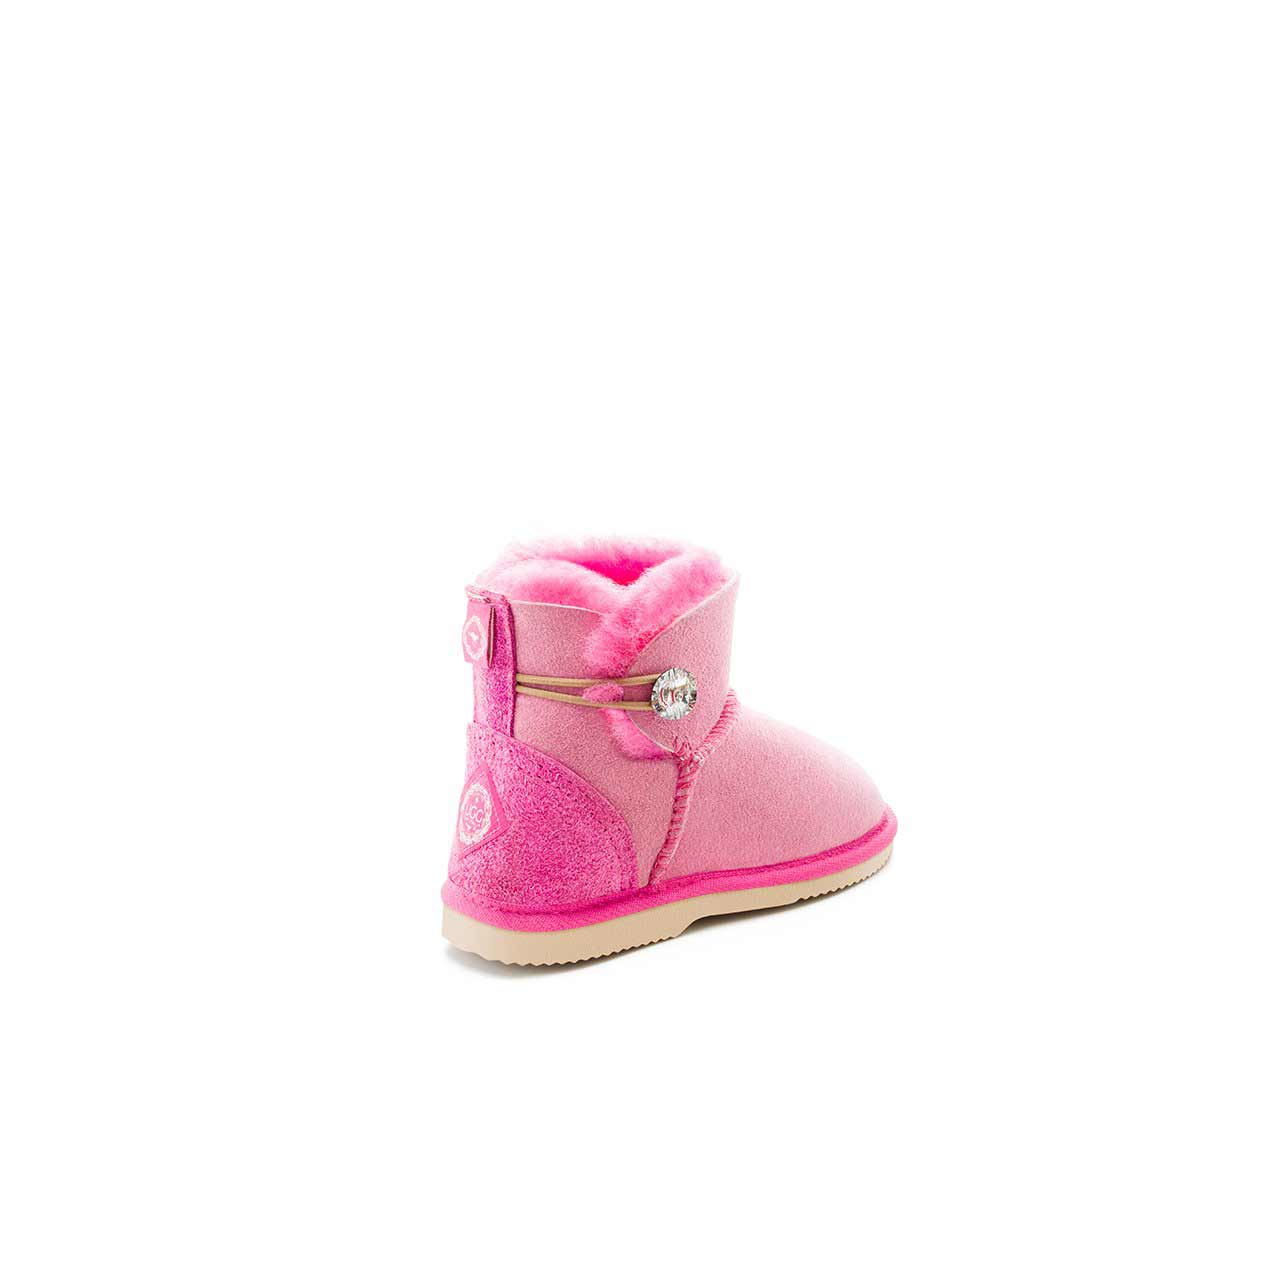 Children's Mini Zsa Zsa Boots | The One and Only | Ugg Australia®